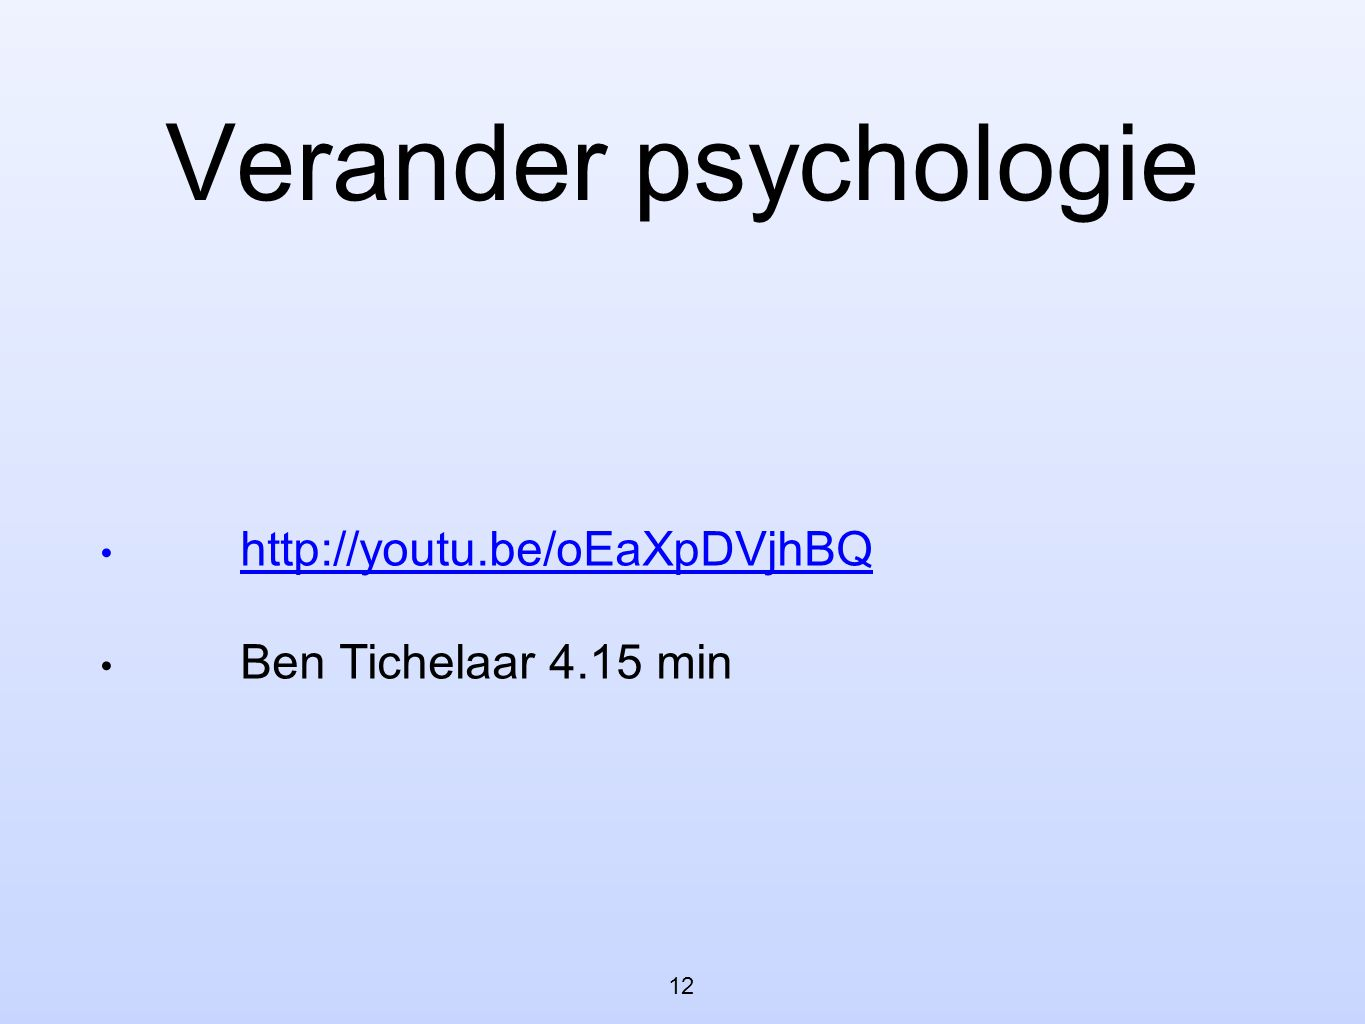 Verander psychologie http://youtu.be/oEaXpDVjhBQ